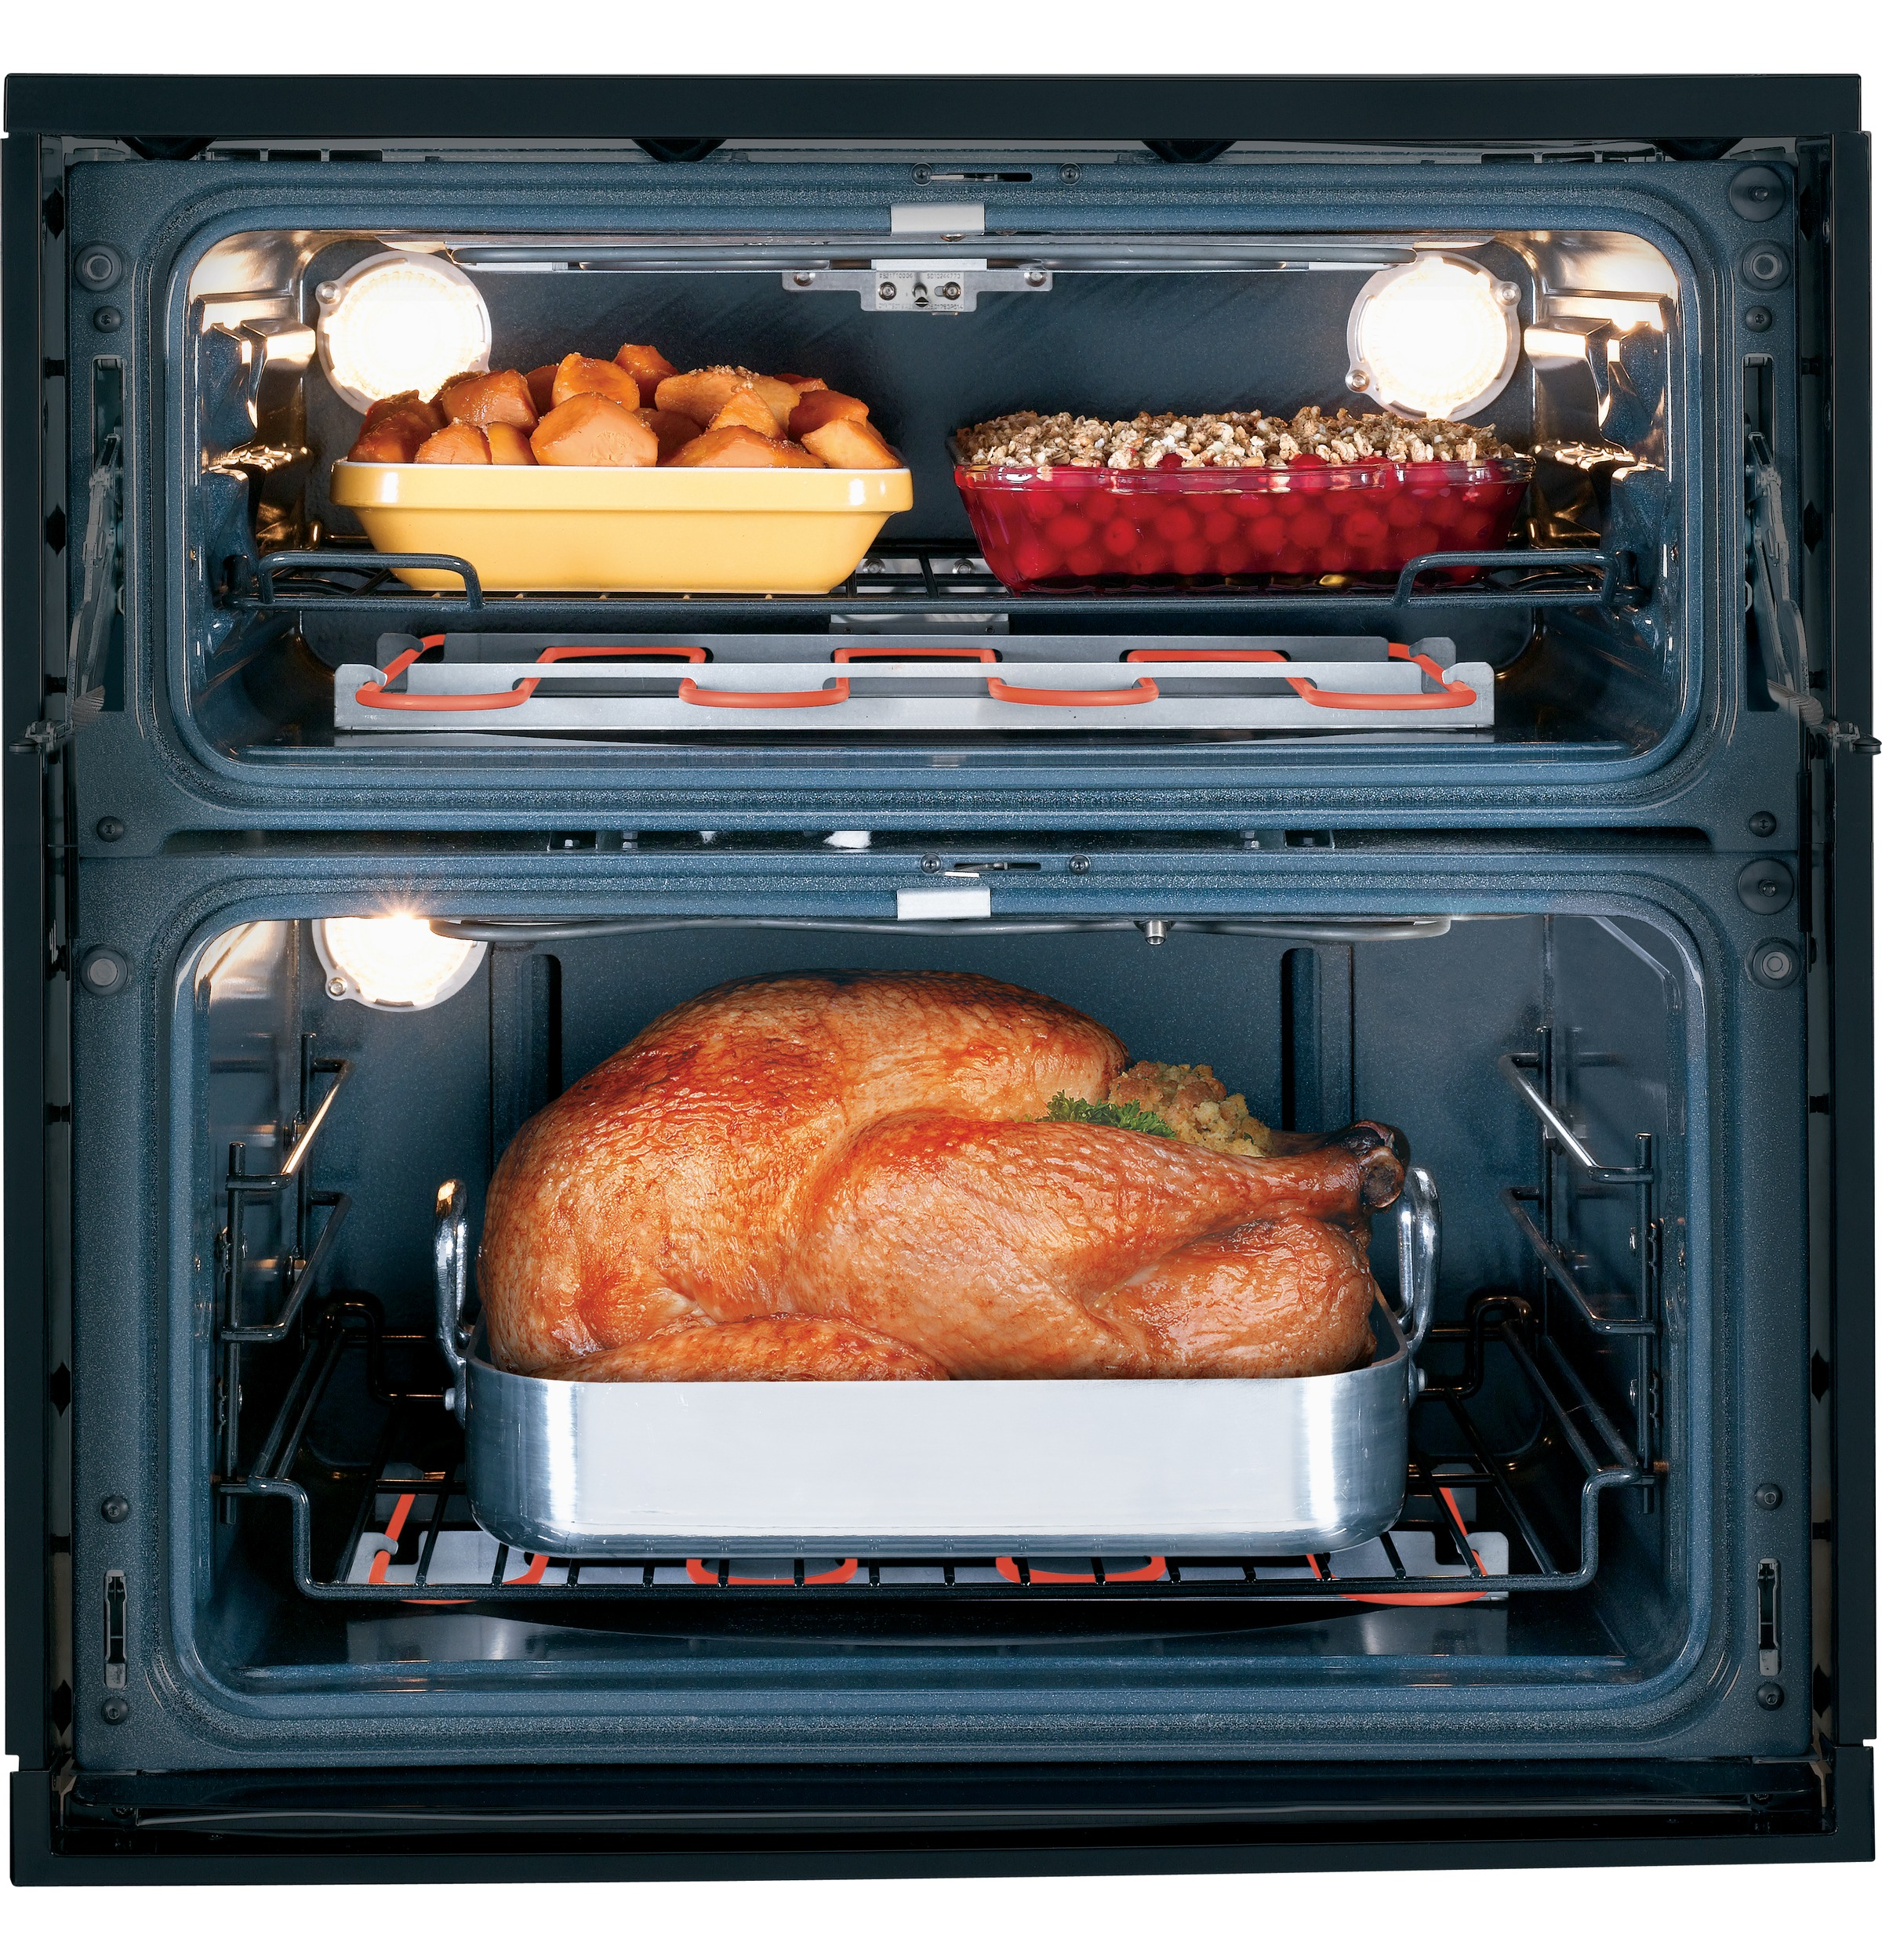 GE Cooks Up Double Oven Versatility In One Small Space